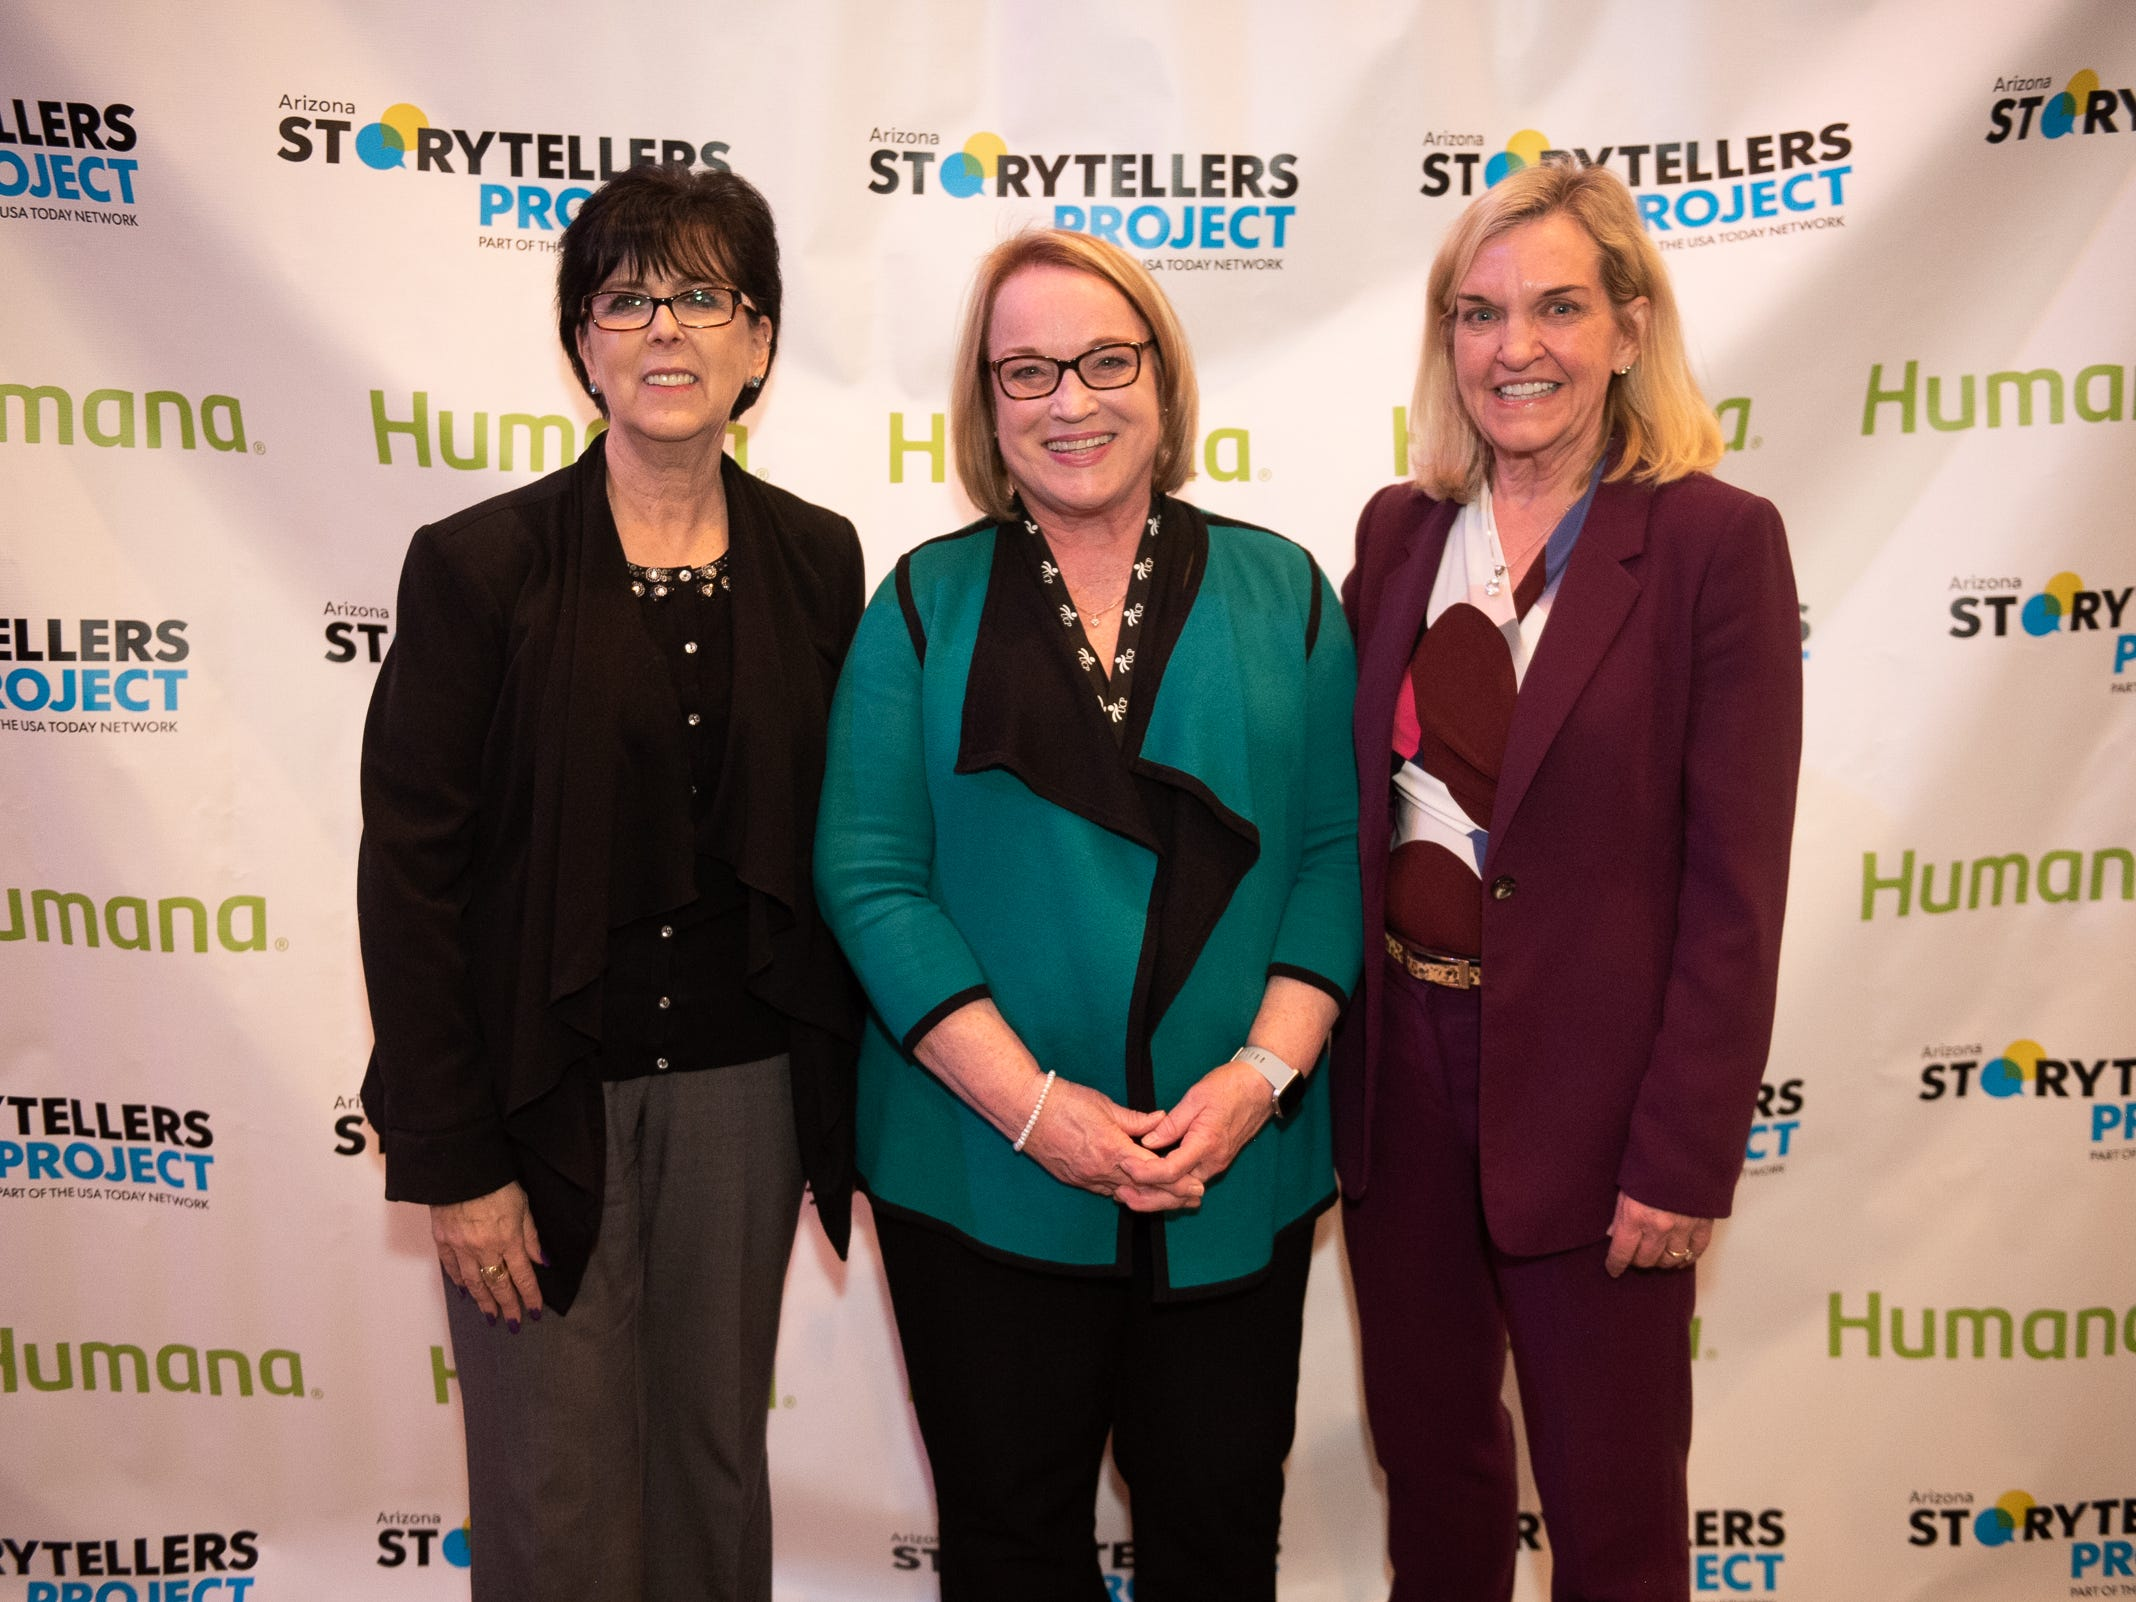 """Attendees strike a pose at the Humana/Storytellers Project step and repeat during """"Arizona Storytellers: Romance or Not"""" at the Scottsdale Center for Performing Arts on Wednesday, Feb. 13, 2019."""